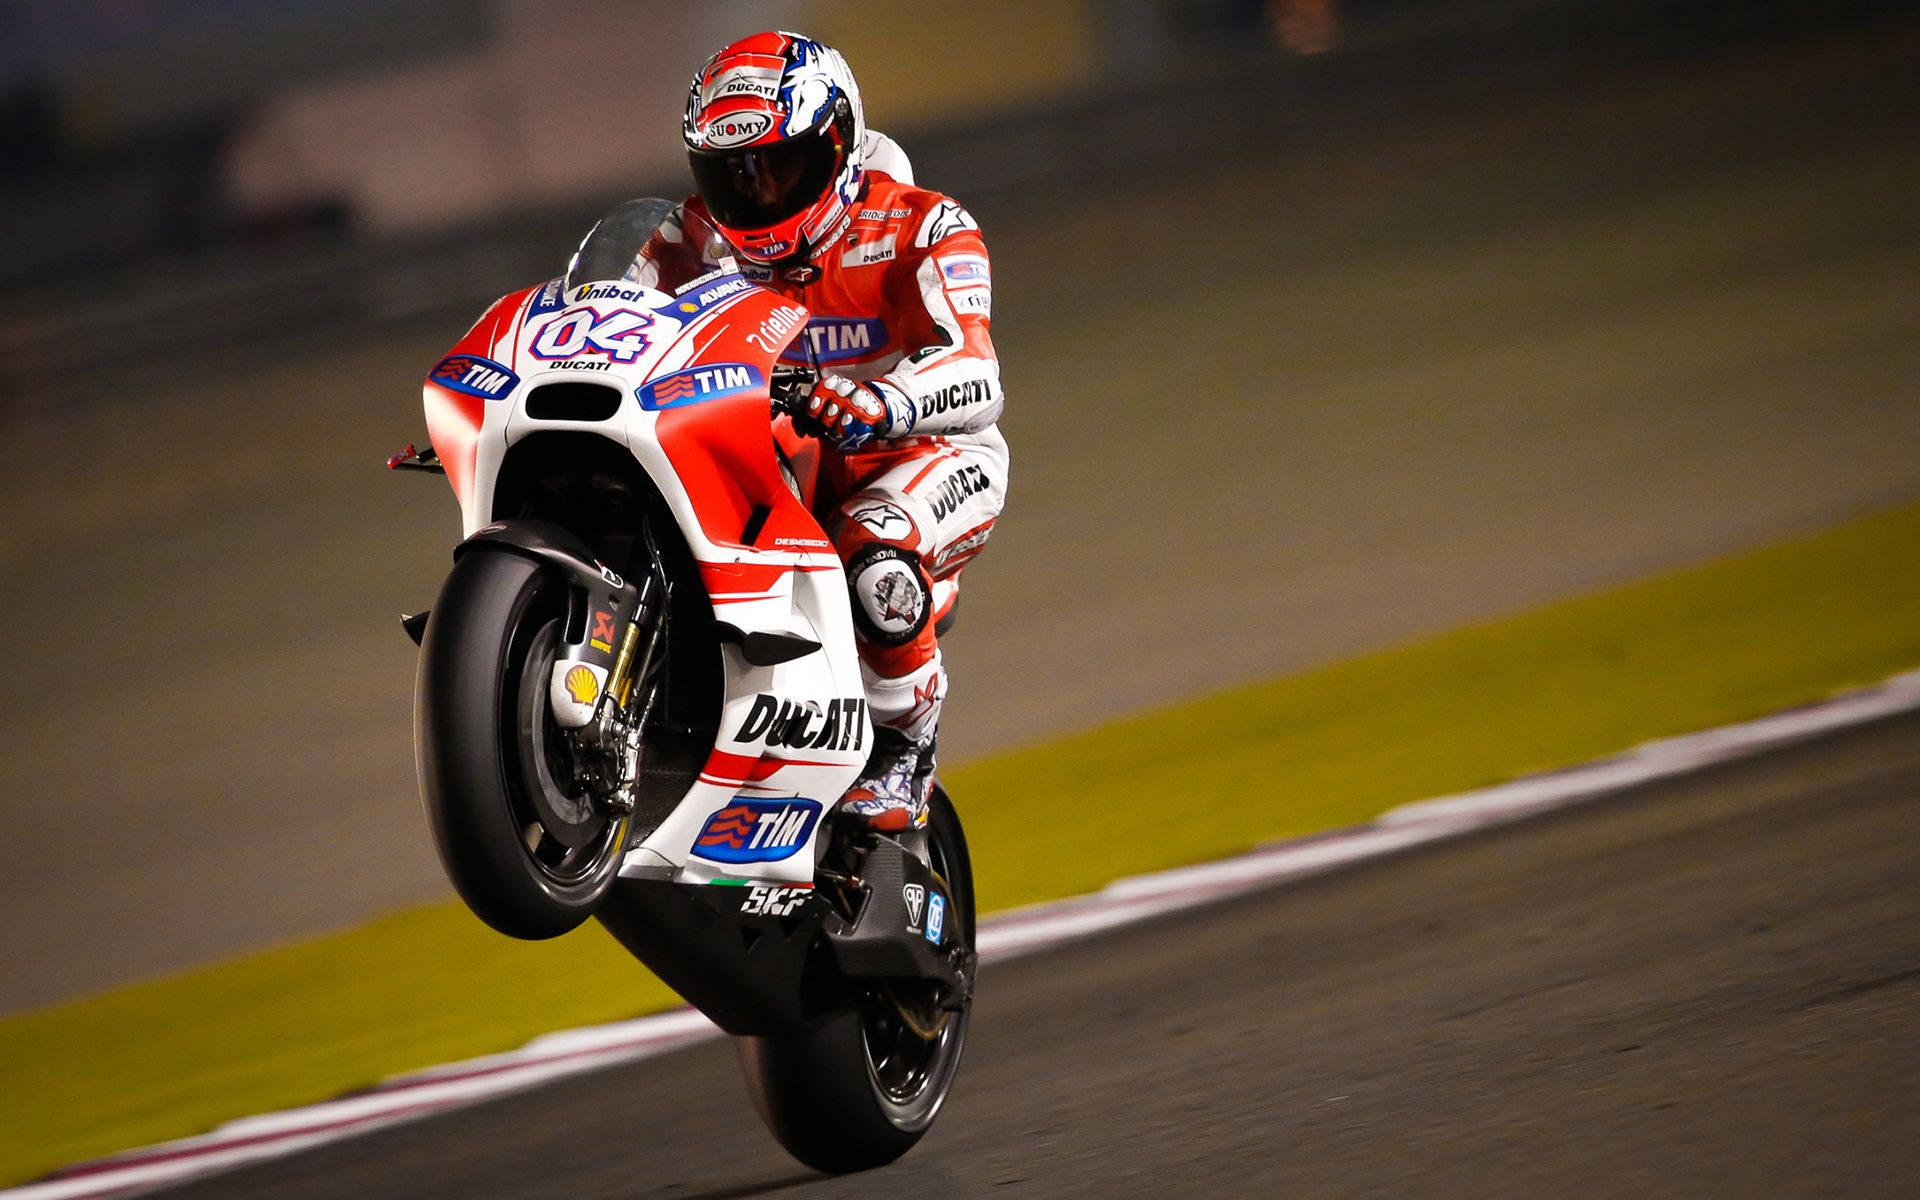 Andrea Dovizioso HD Wallpapers   BackgroundHDWallpapers Android 1920x1200